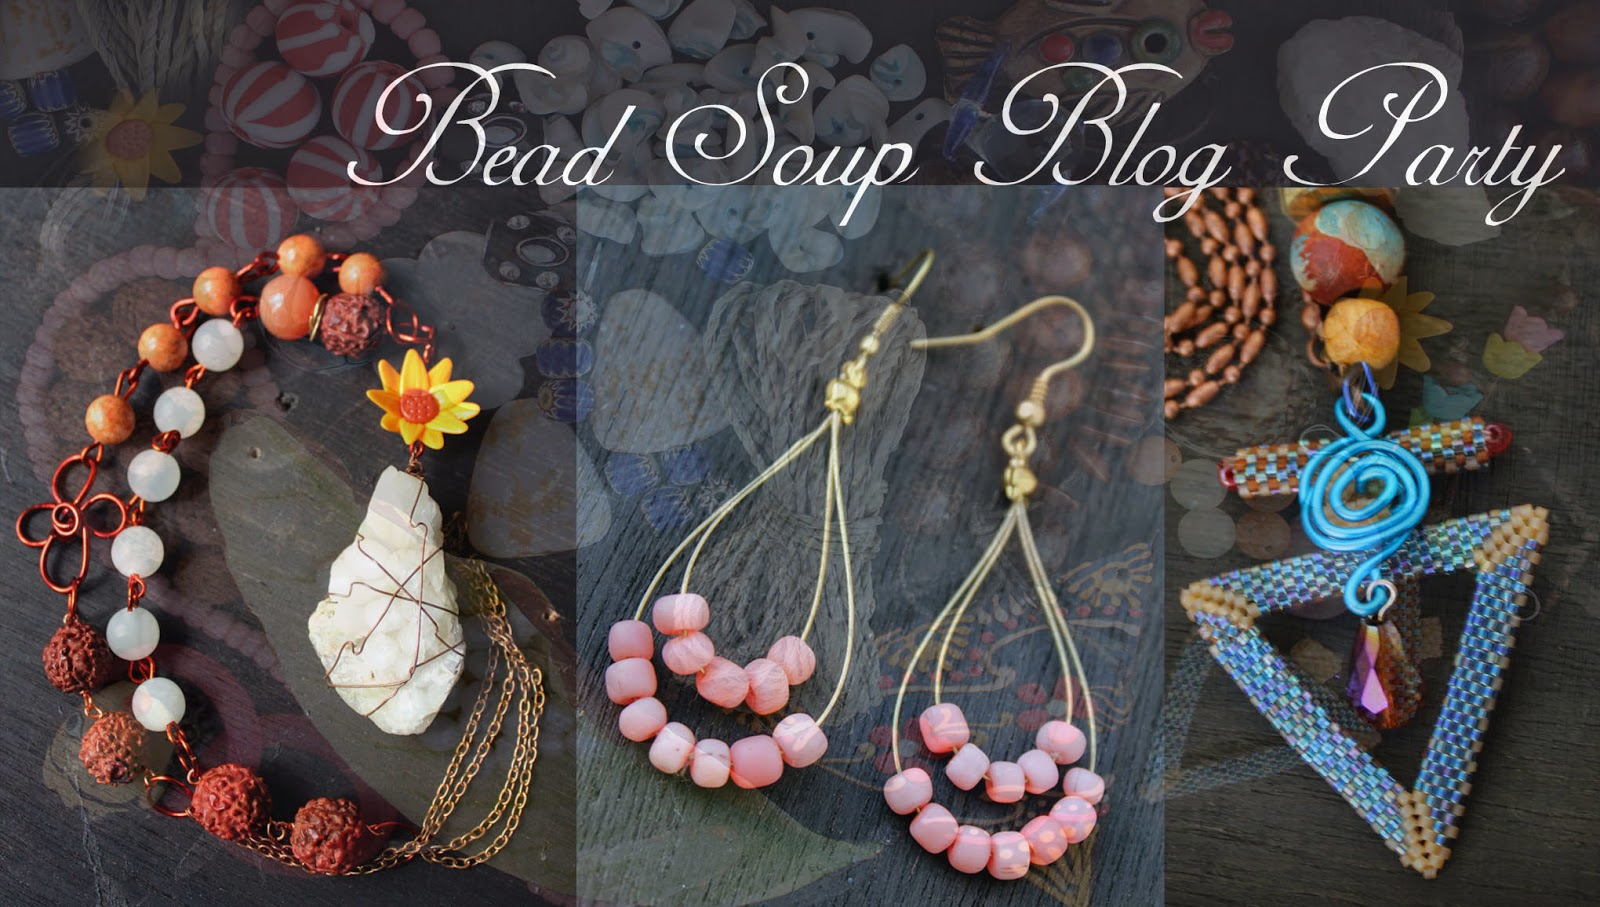 Bead soup jewelry